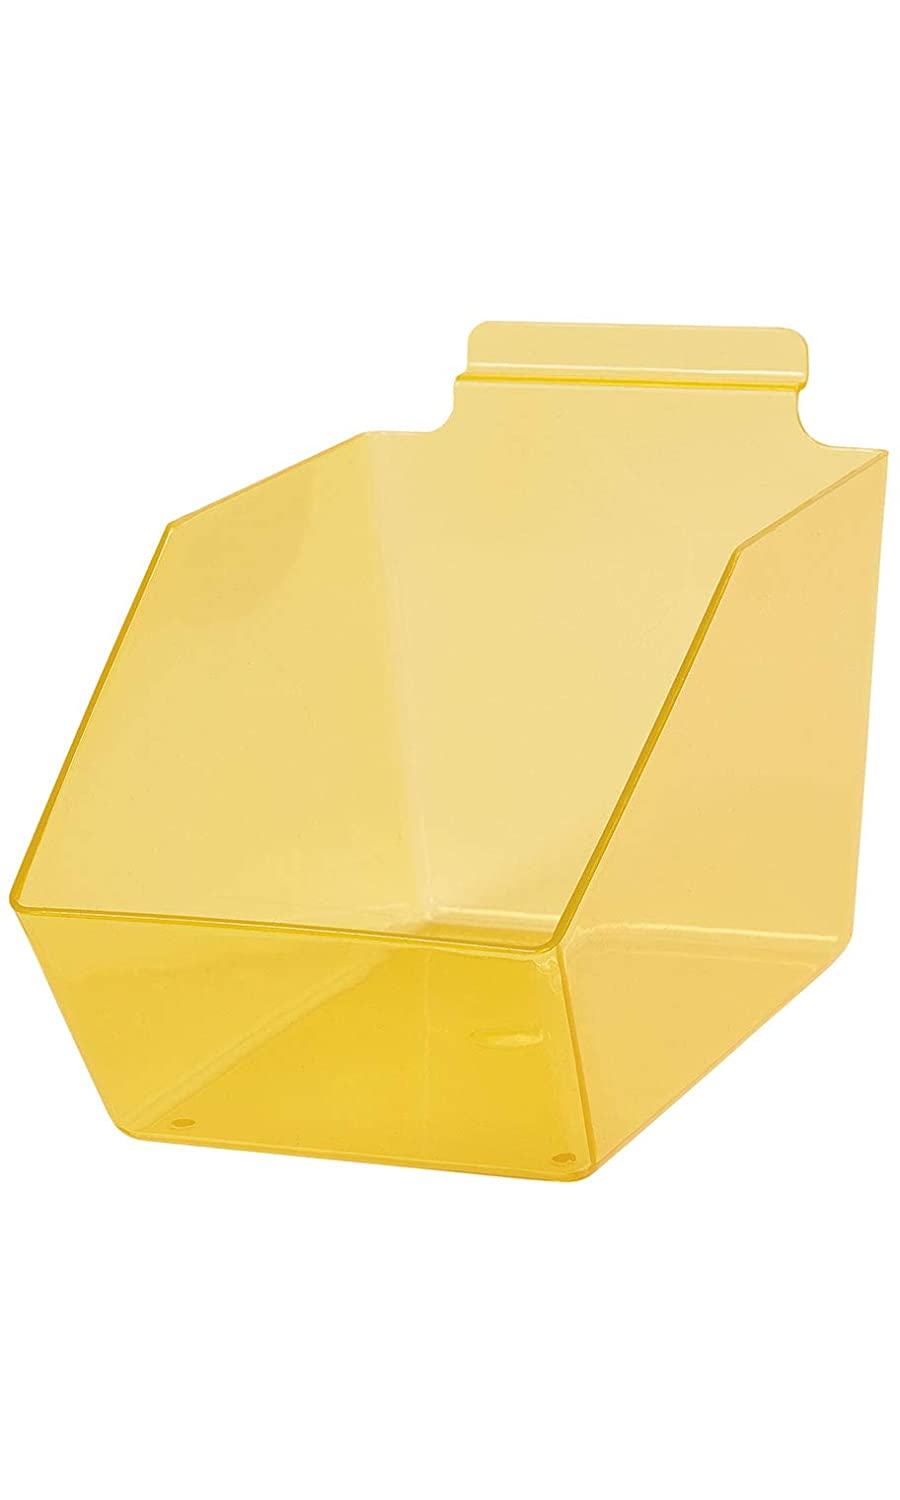 """Clear Yellow Plastic Dump Bin for 6"""" X ½âPurchase Slatwall Outlet ☆ Free Shipping - 5"""